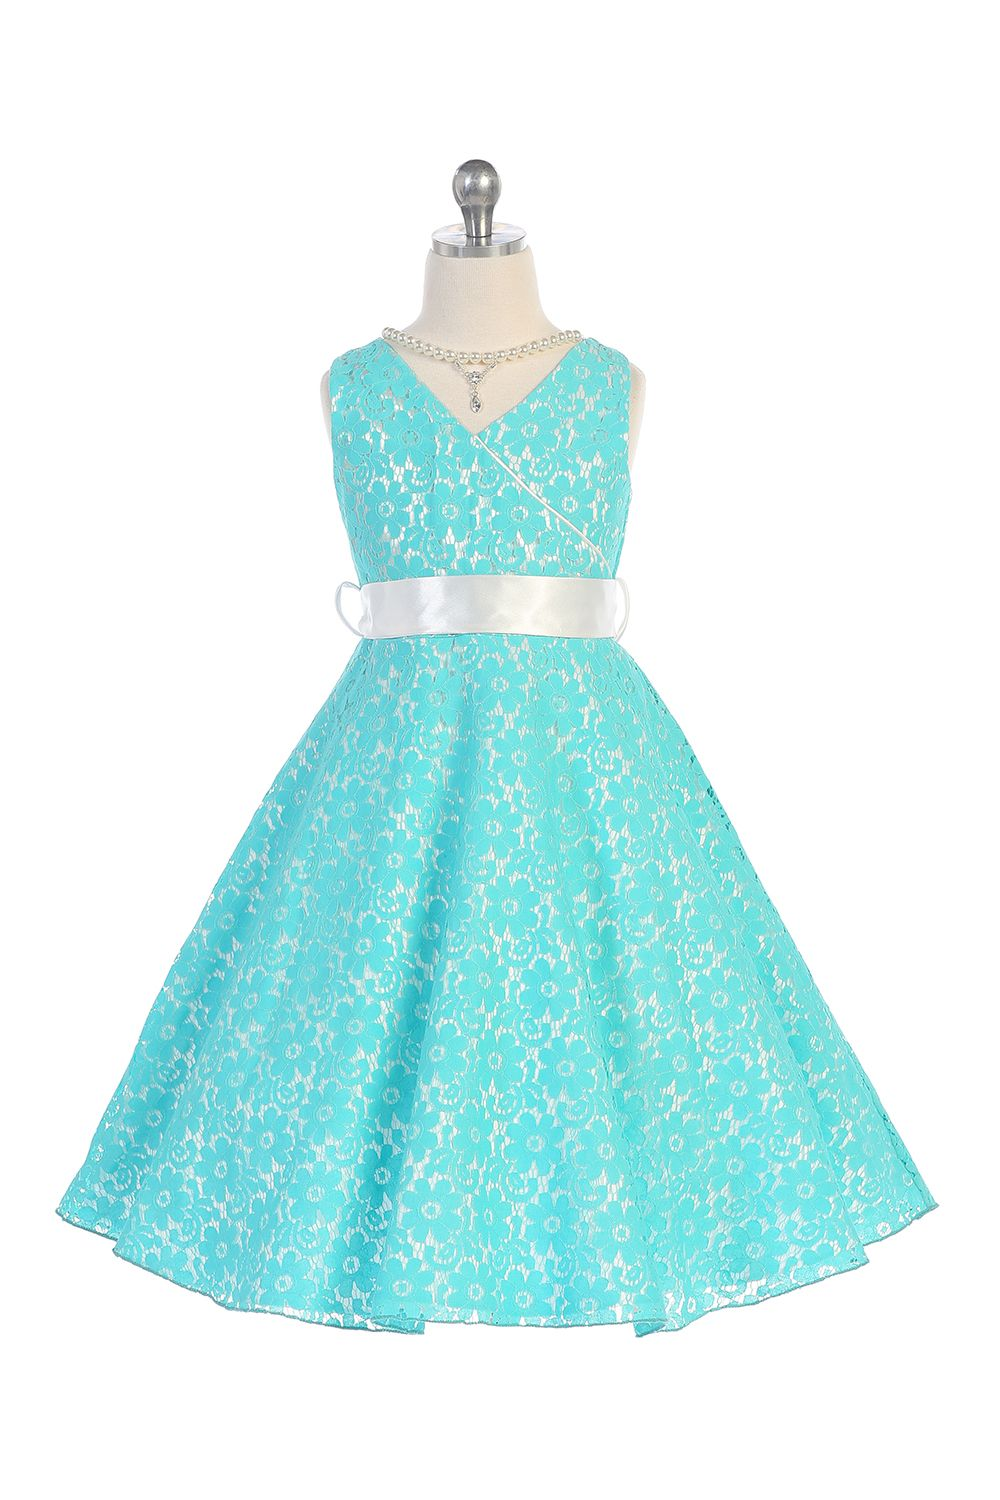 Turquoise lace floral junior bridesmaid i love this wedding turquoise lace floral junior bridesmaid i love this junior bridesmaid dresseswedding dressespattern ombrellifo Image collections